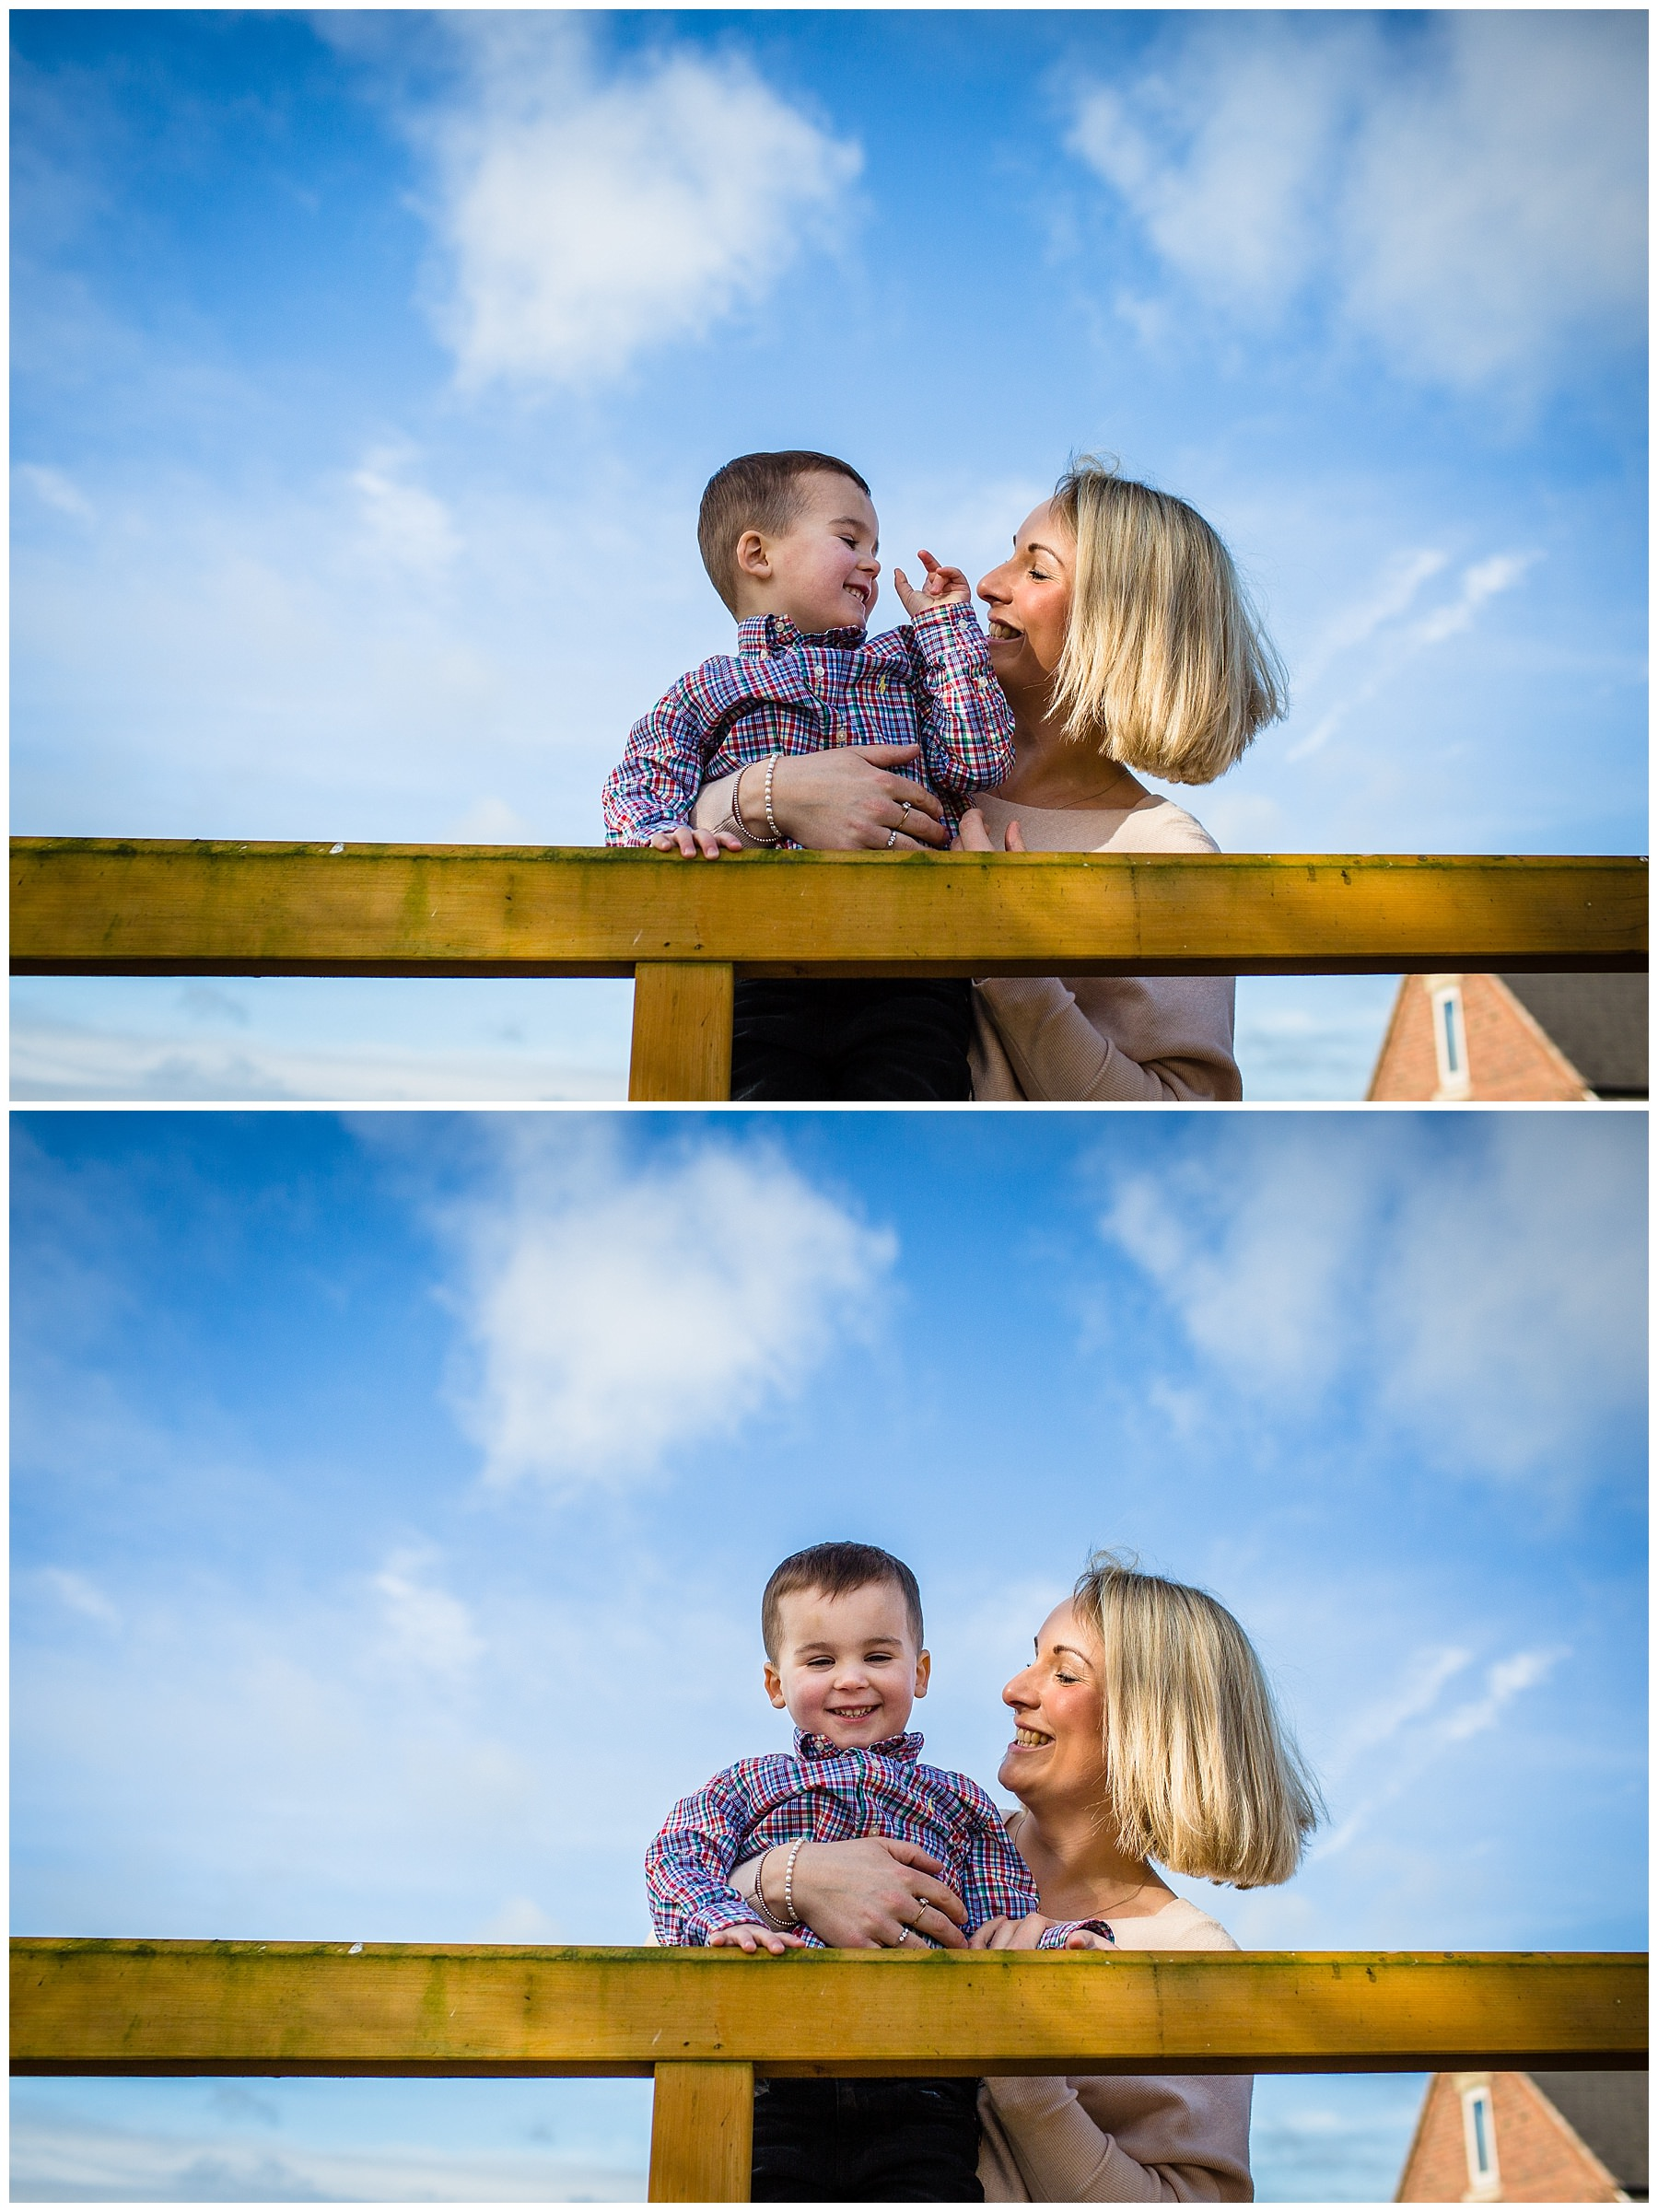 mother and son of three looking at one another in blue sky interacting with one another - charlotte giddings photography